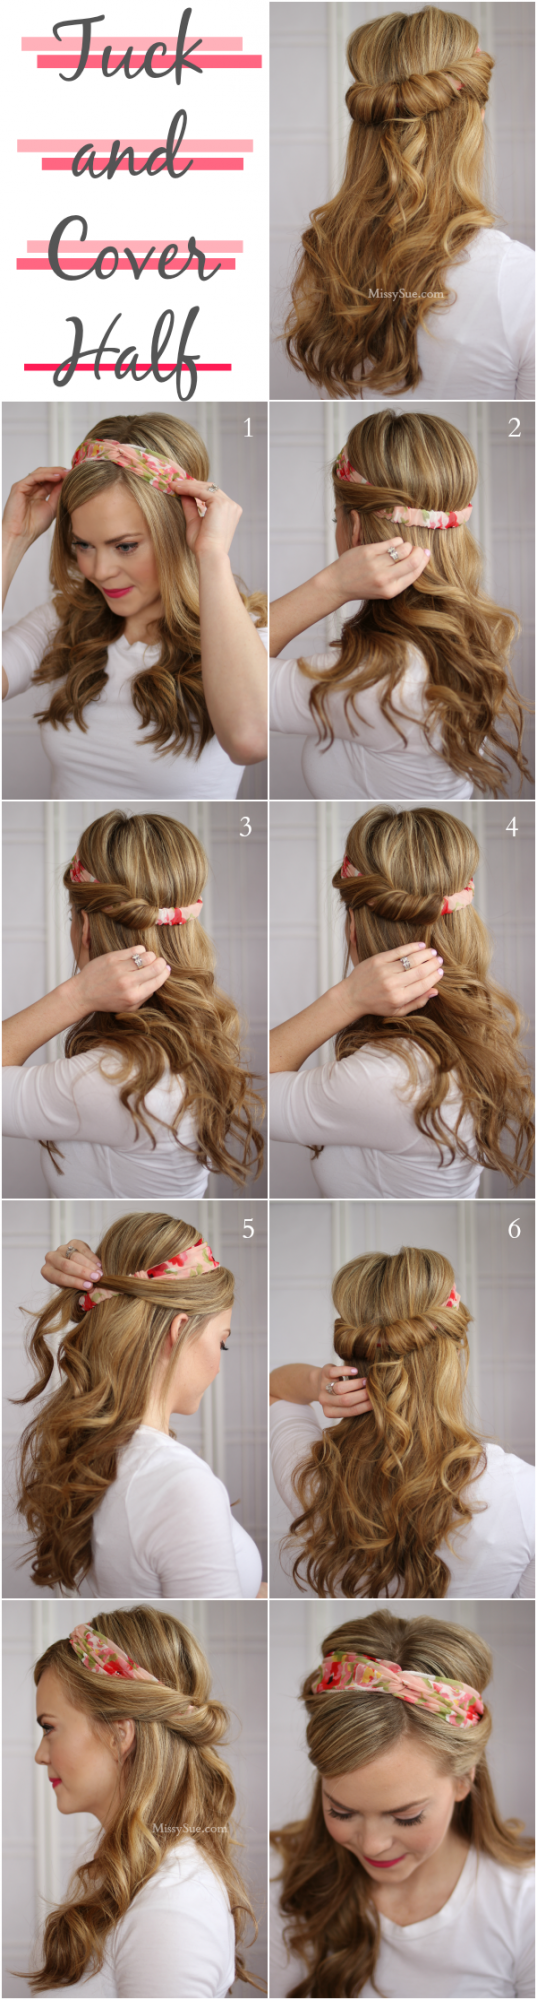 cute hairstyles that can be done in a few minutes easy woman